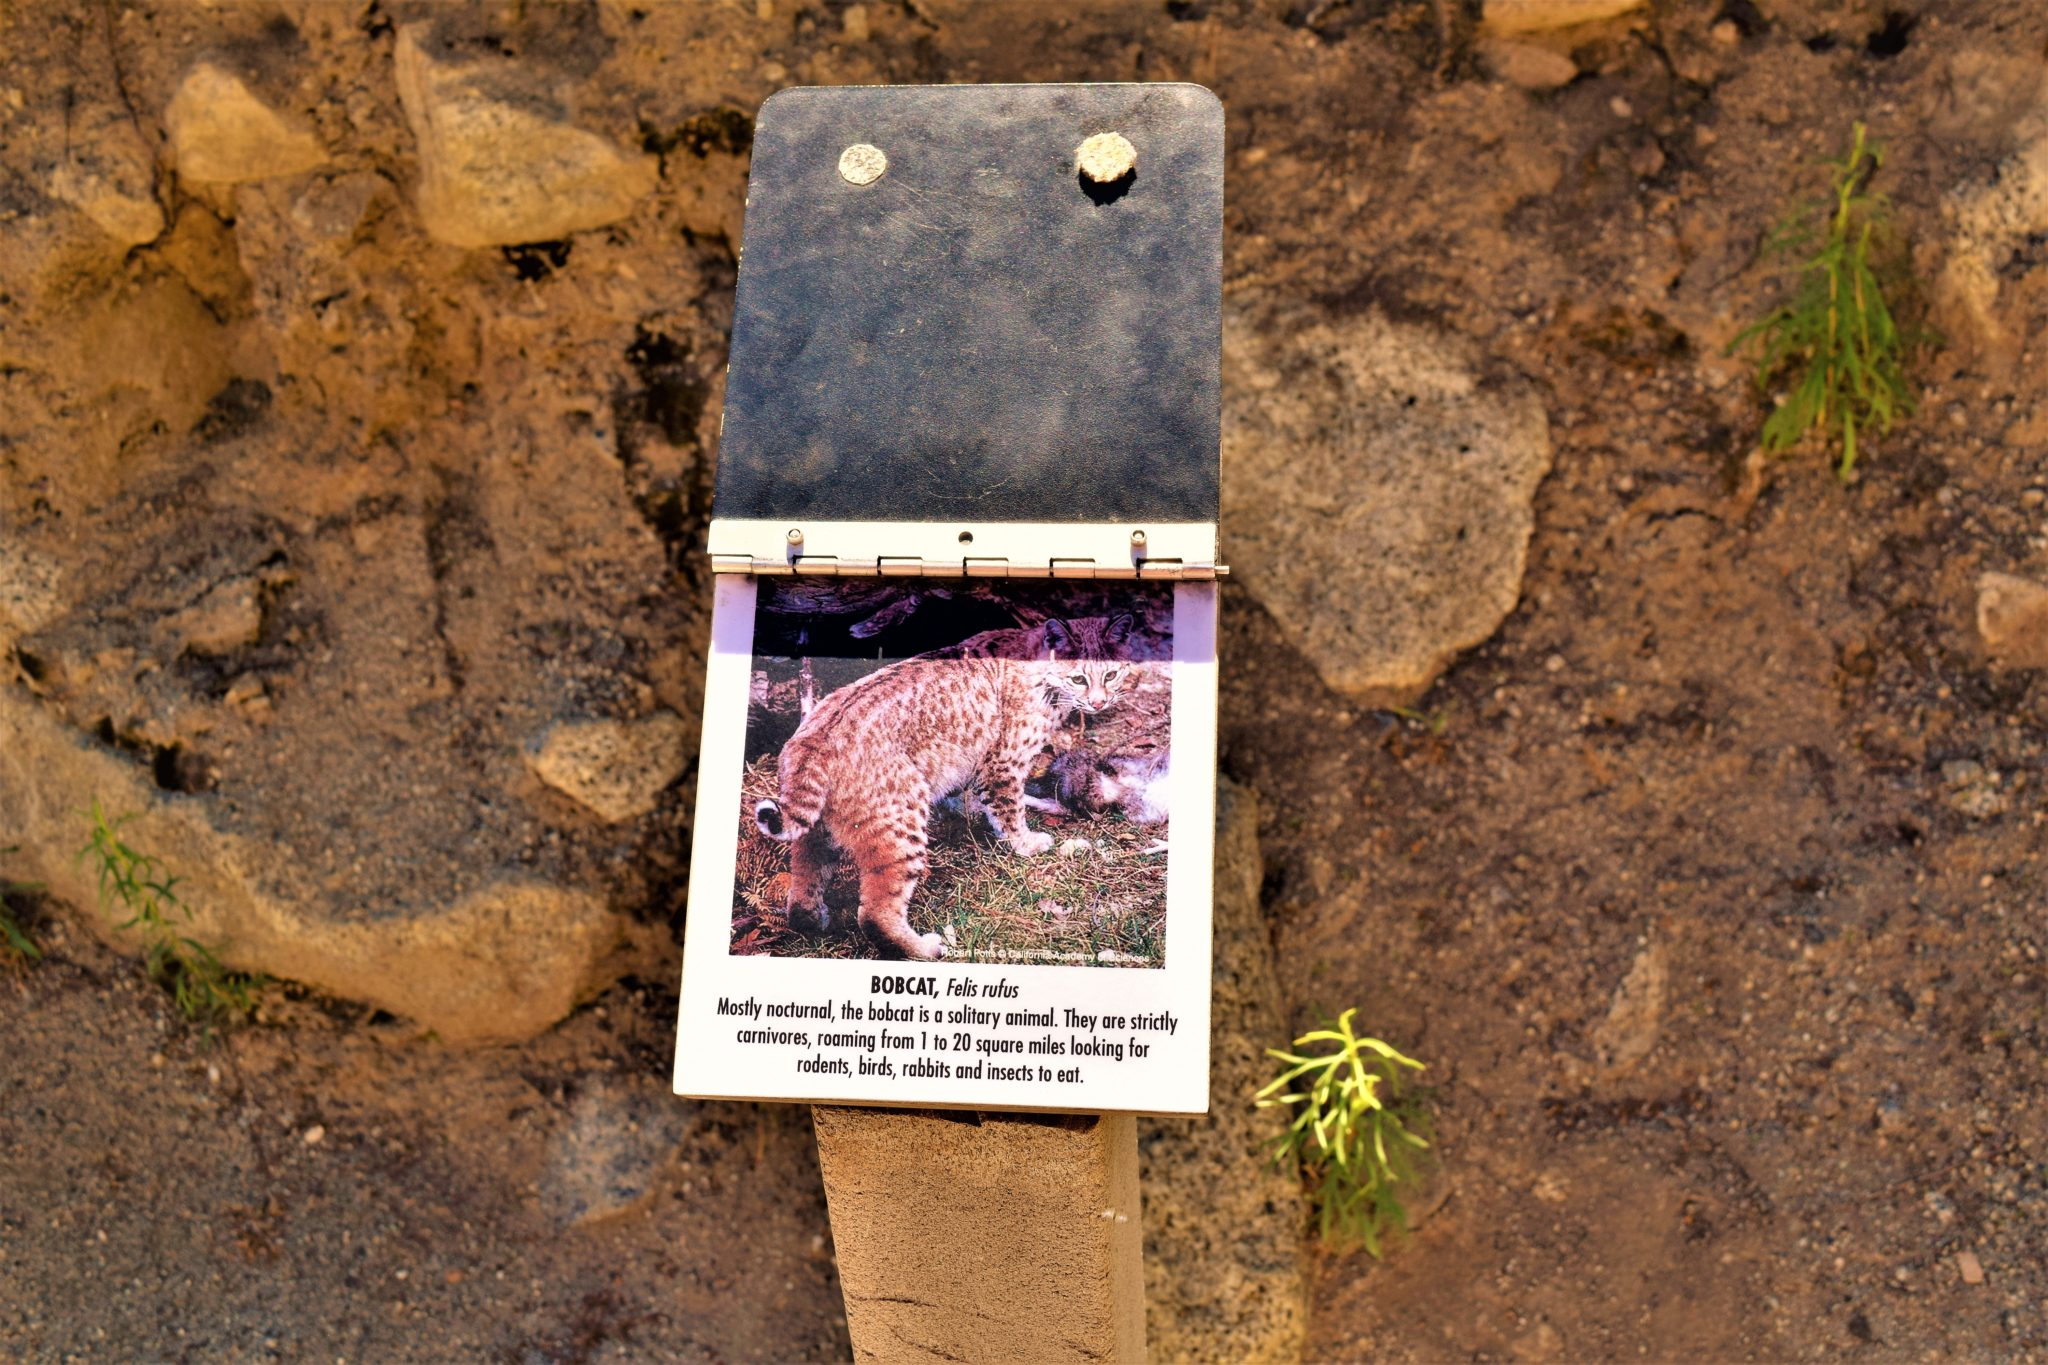 Bobcat information cards, Palm Springs tramway, California